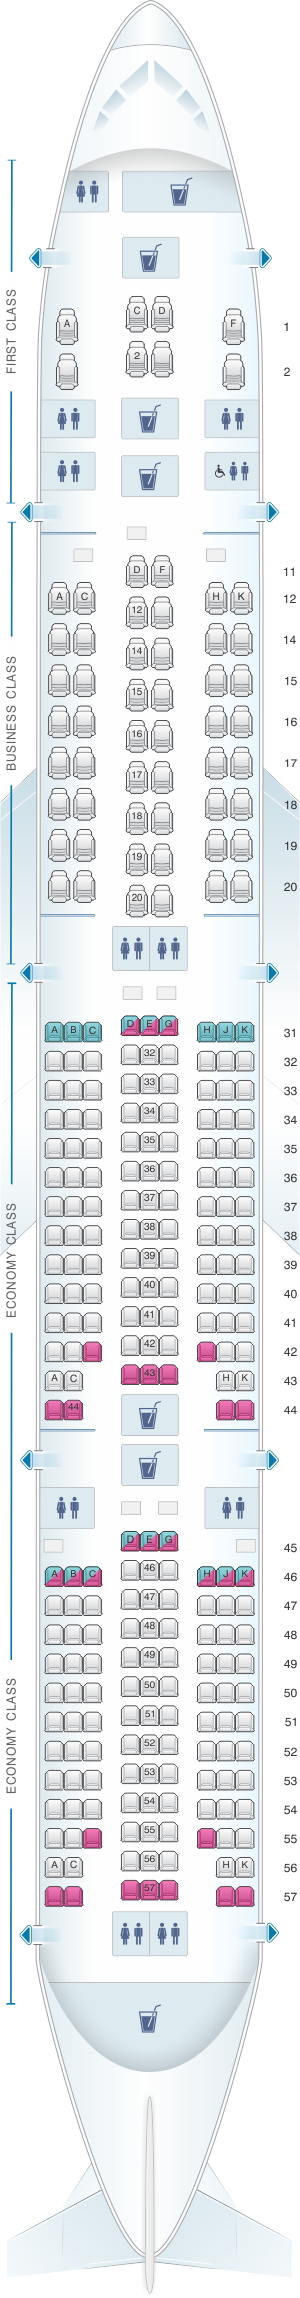 Seat map for Singapore Airlines Boeing B777 300